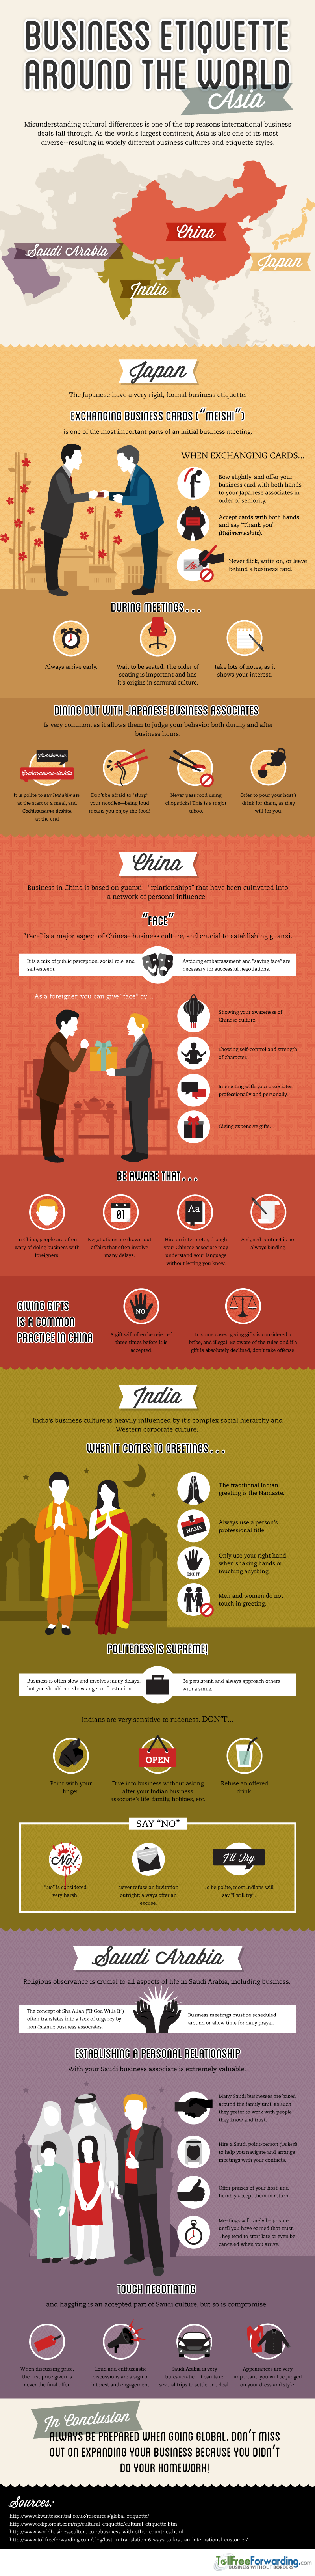 Business Etiquette Around the World (Asia) infographic